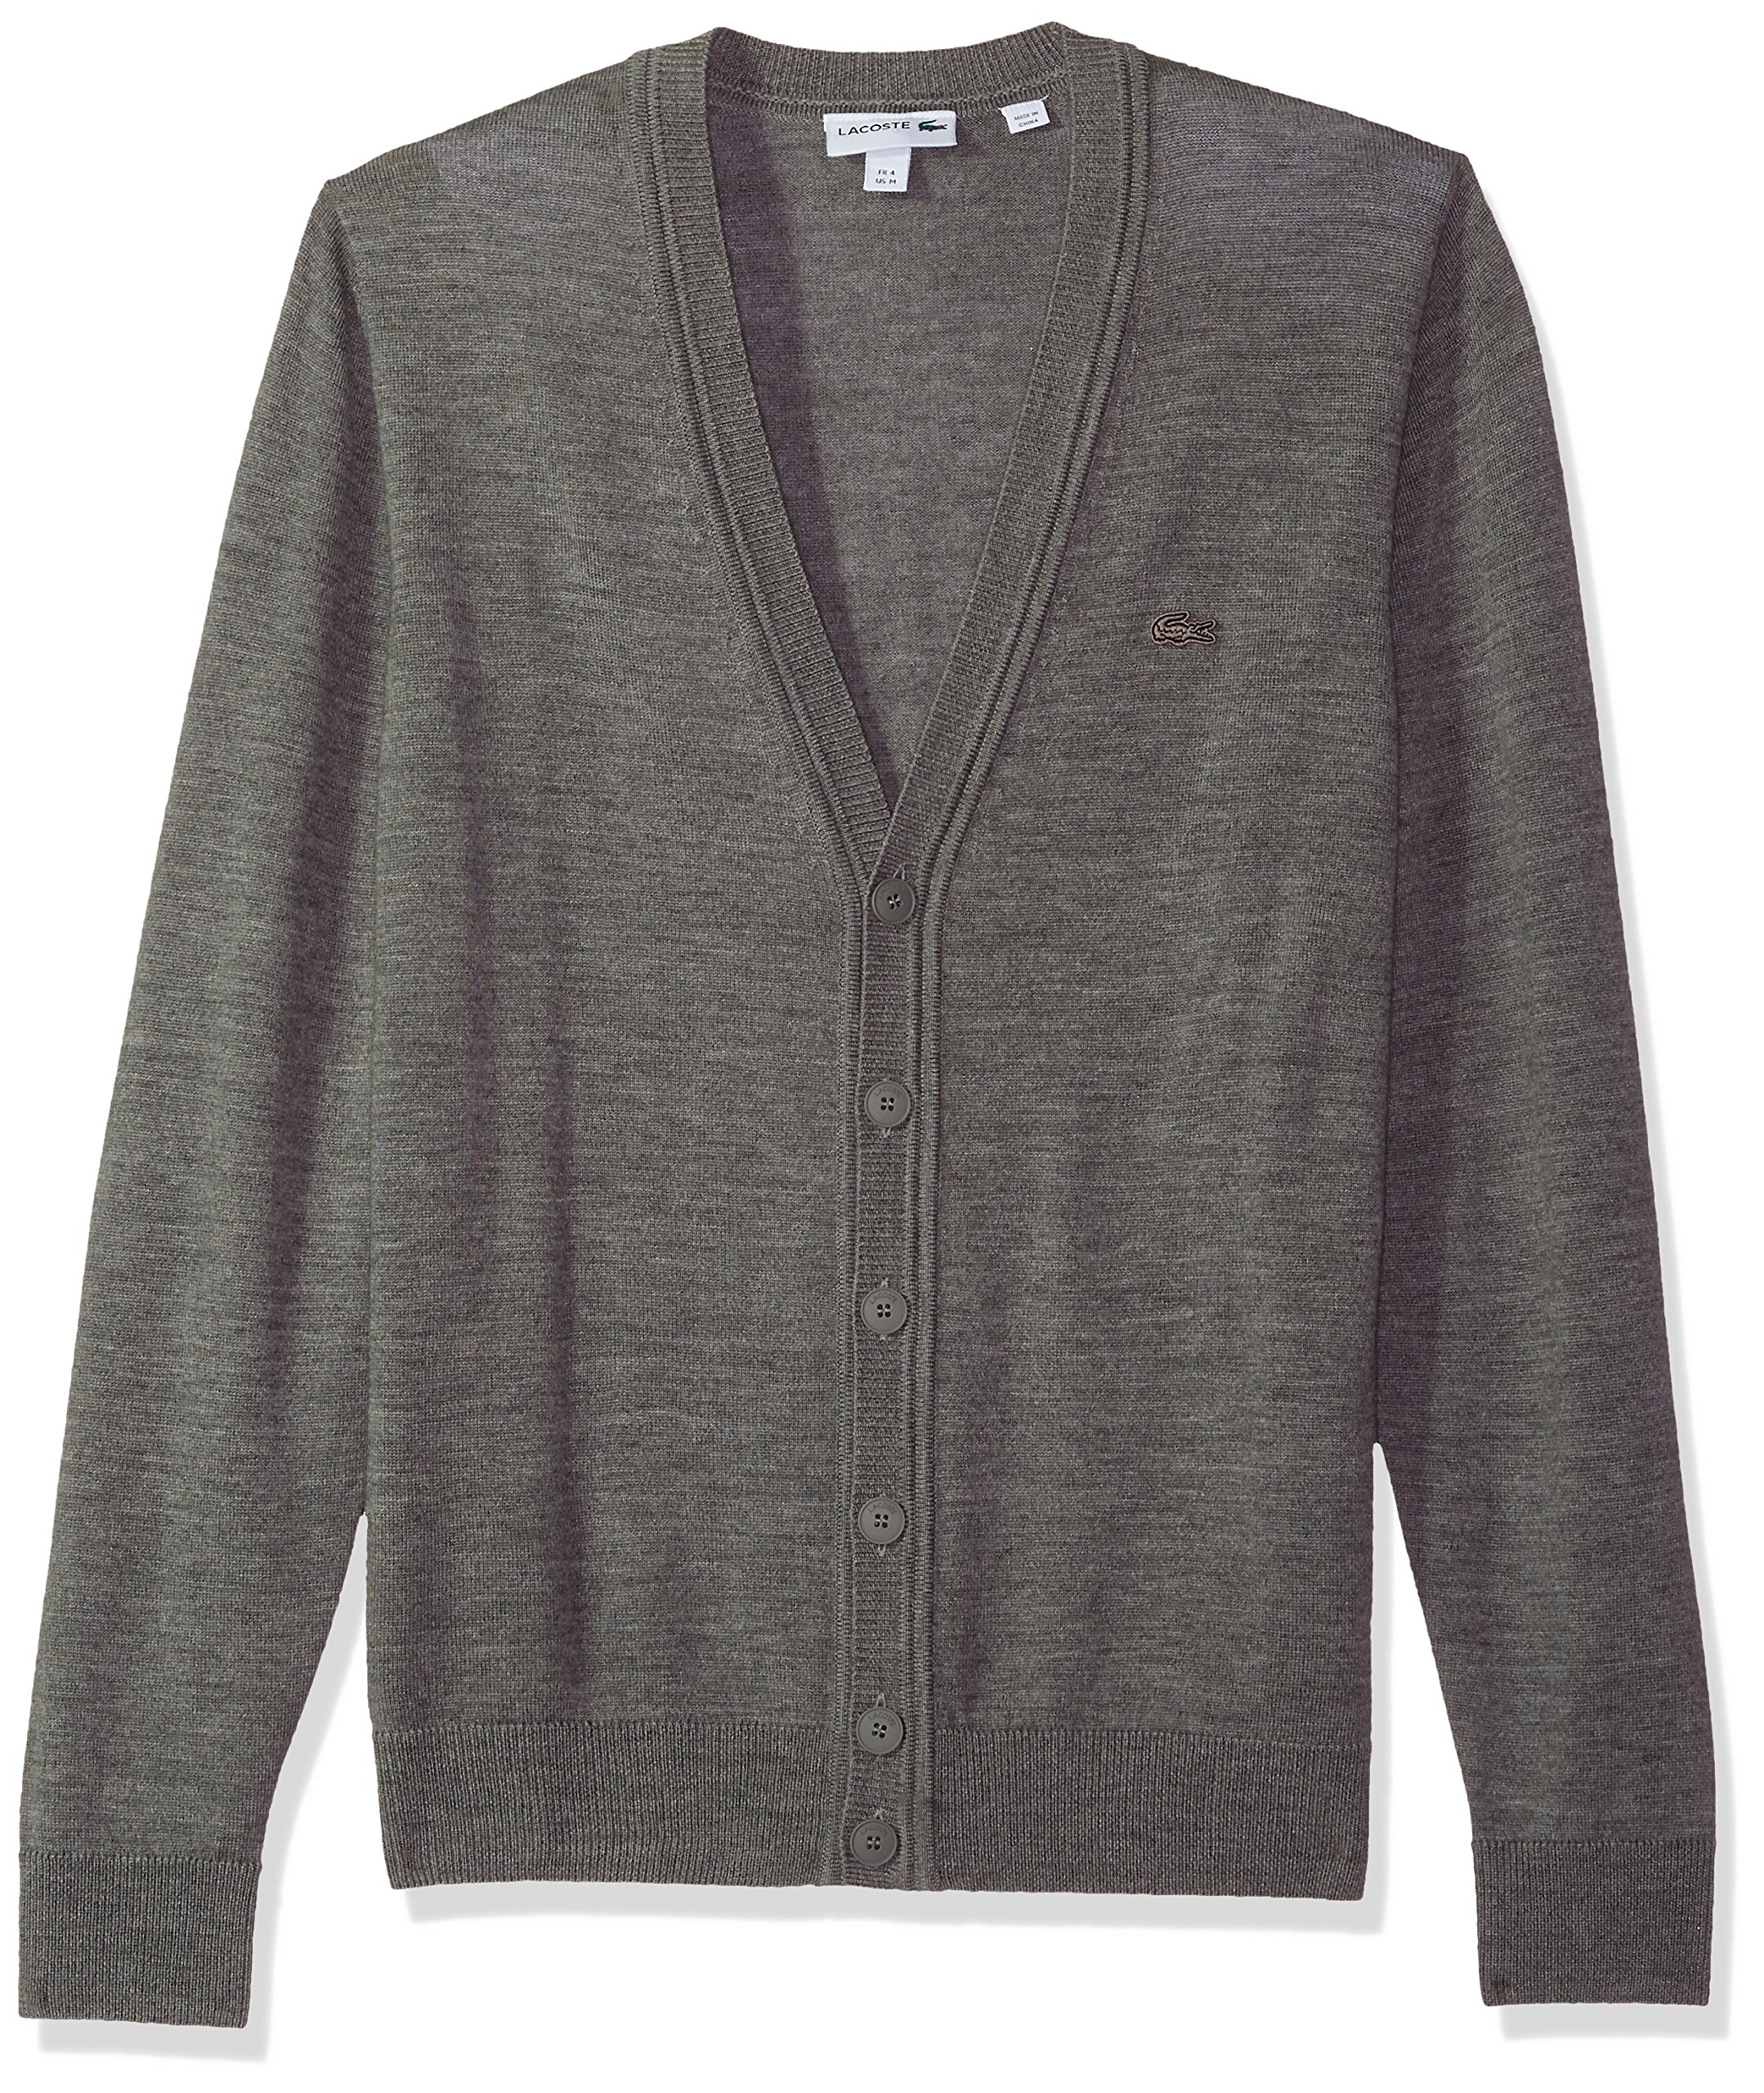 Lacoste Men's Classic Lambswool Cardigan Sweater with Tonal Croc, AH2996, Stone Chine, XXX-Large